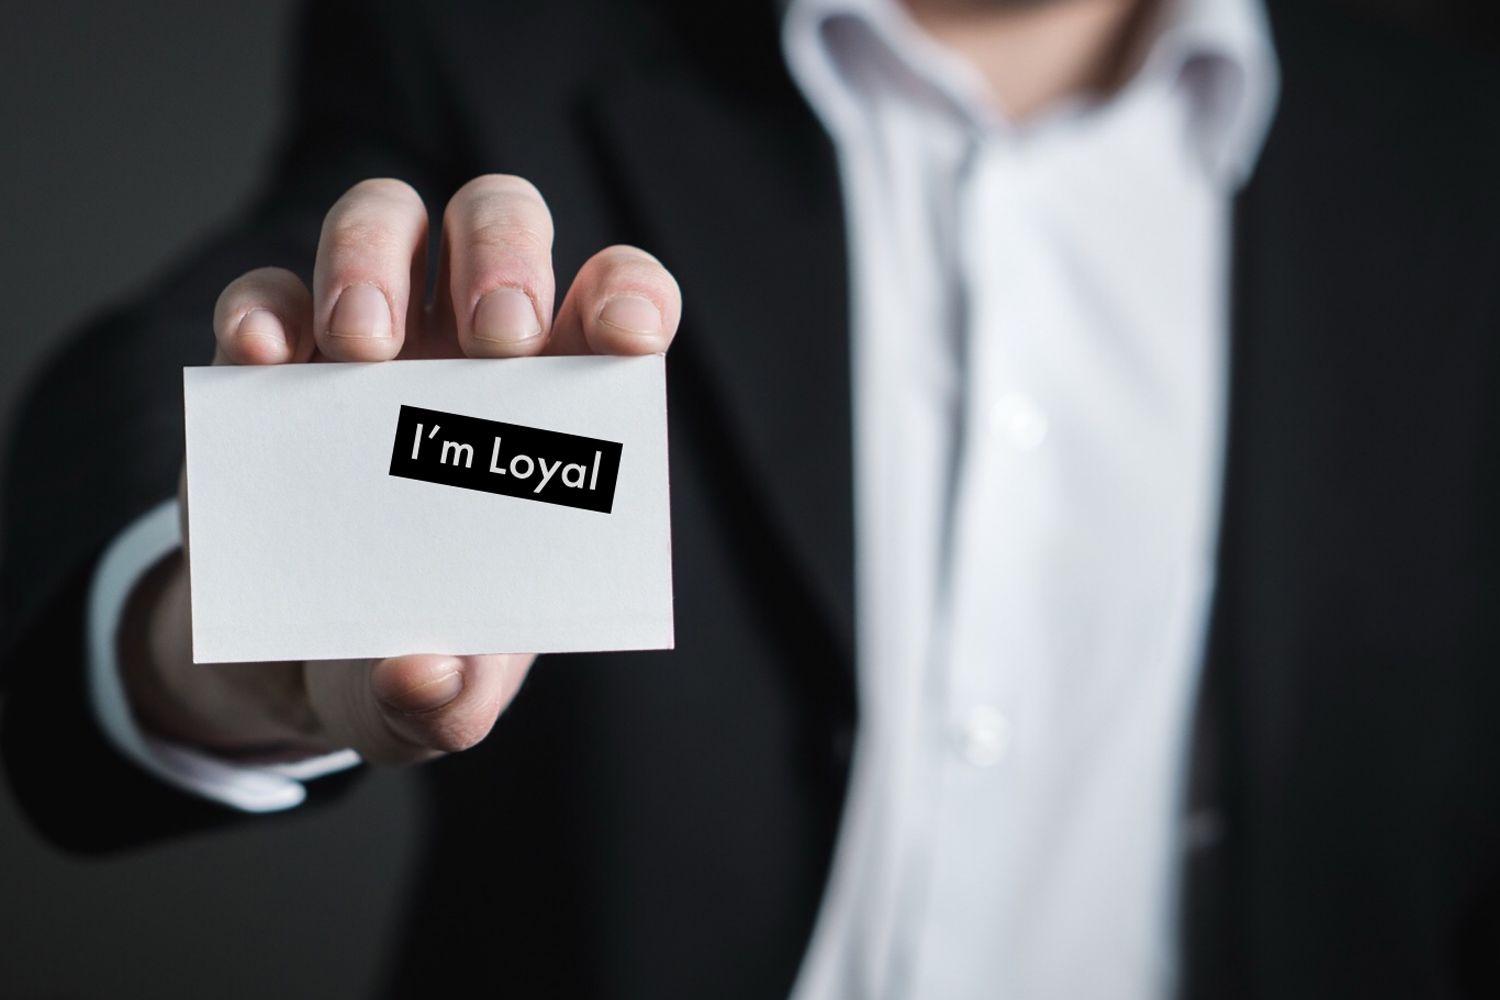 Hotels Love Investing in Loyalty Programs, But are They Just a Waste of Time?